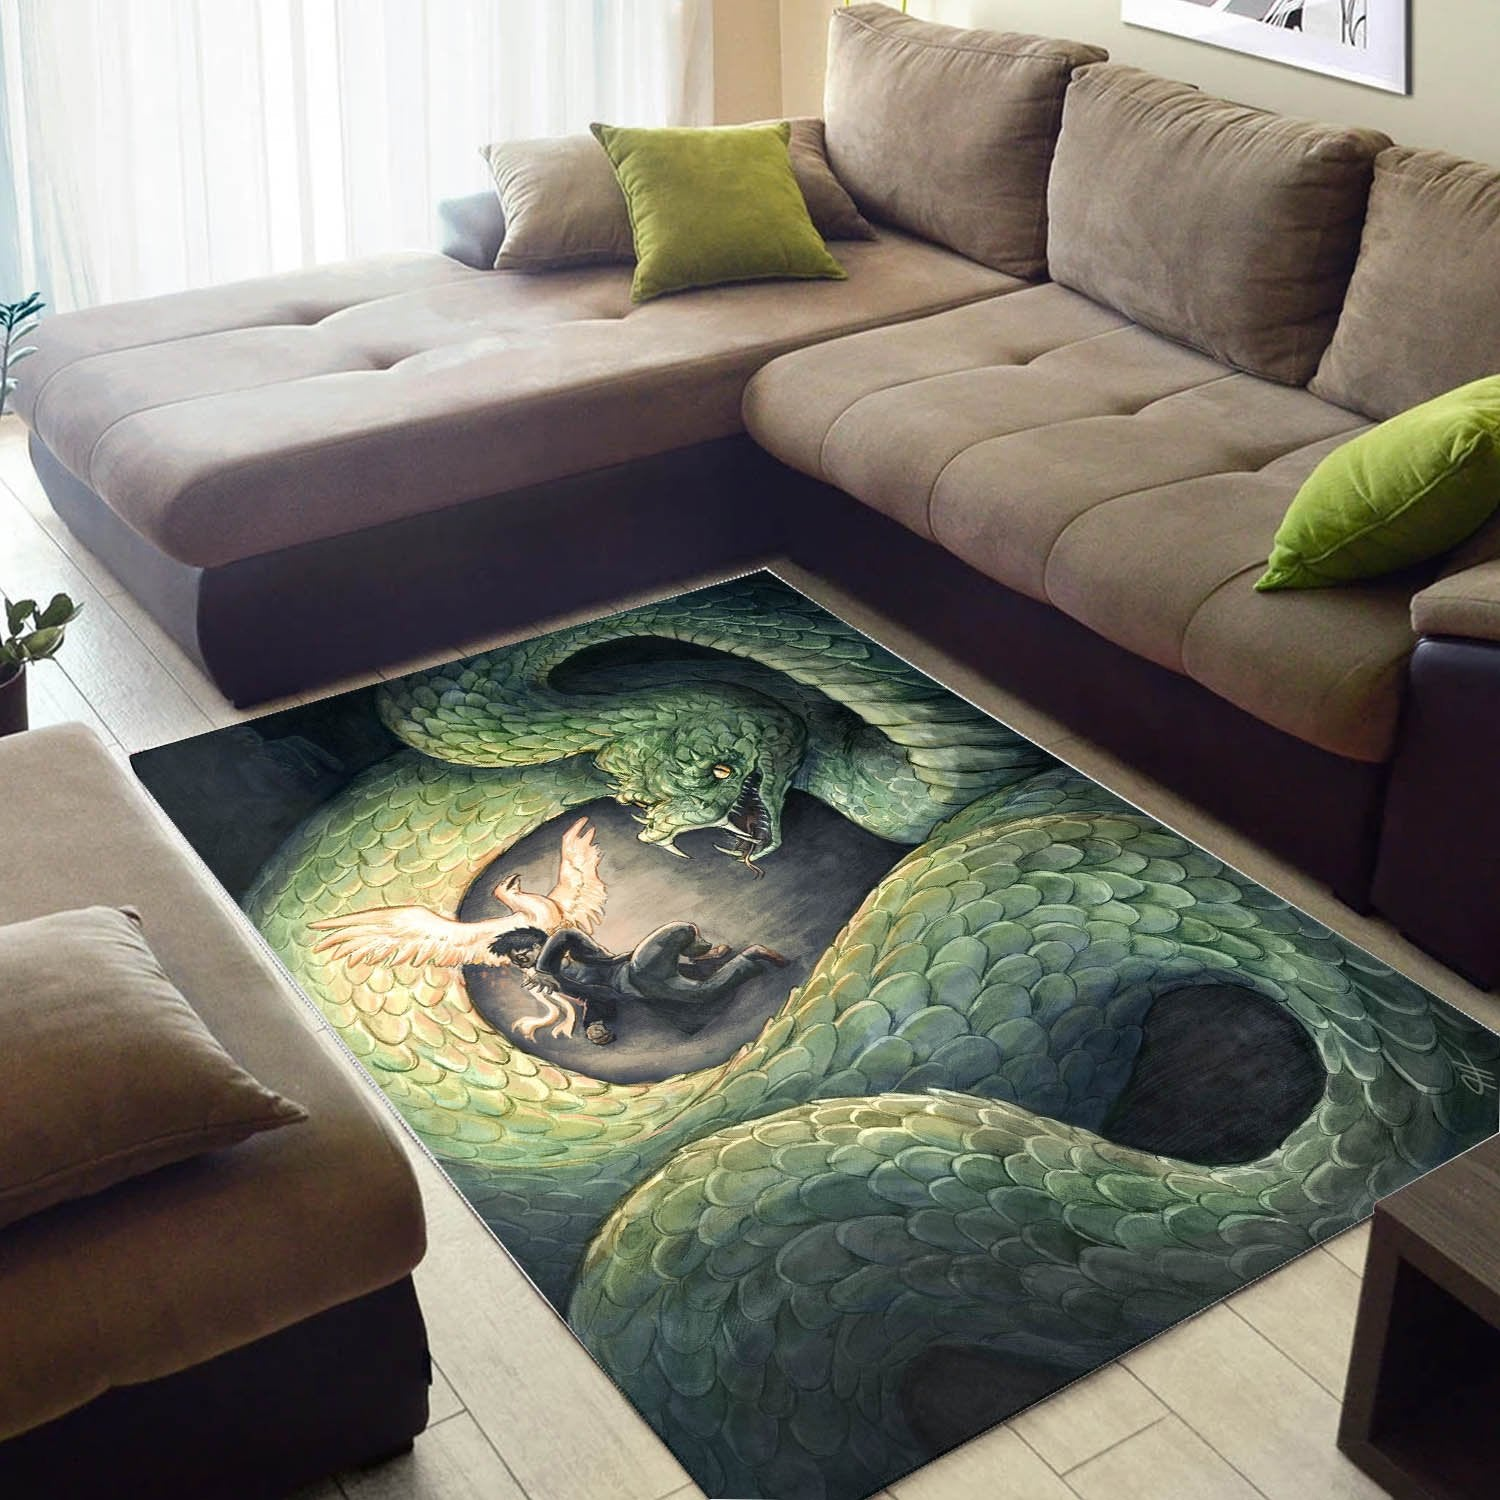 The Chamber Of Secrets Rug, Area Rug, Floor Decor